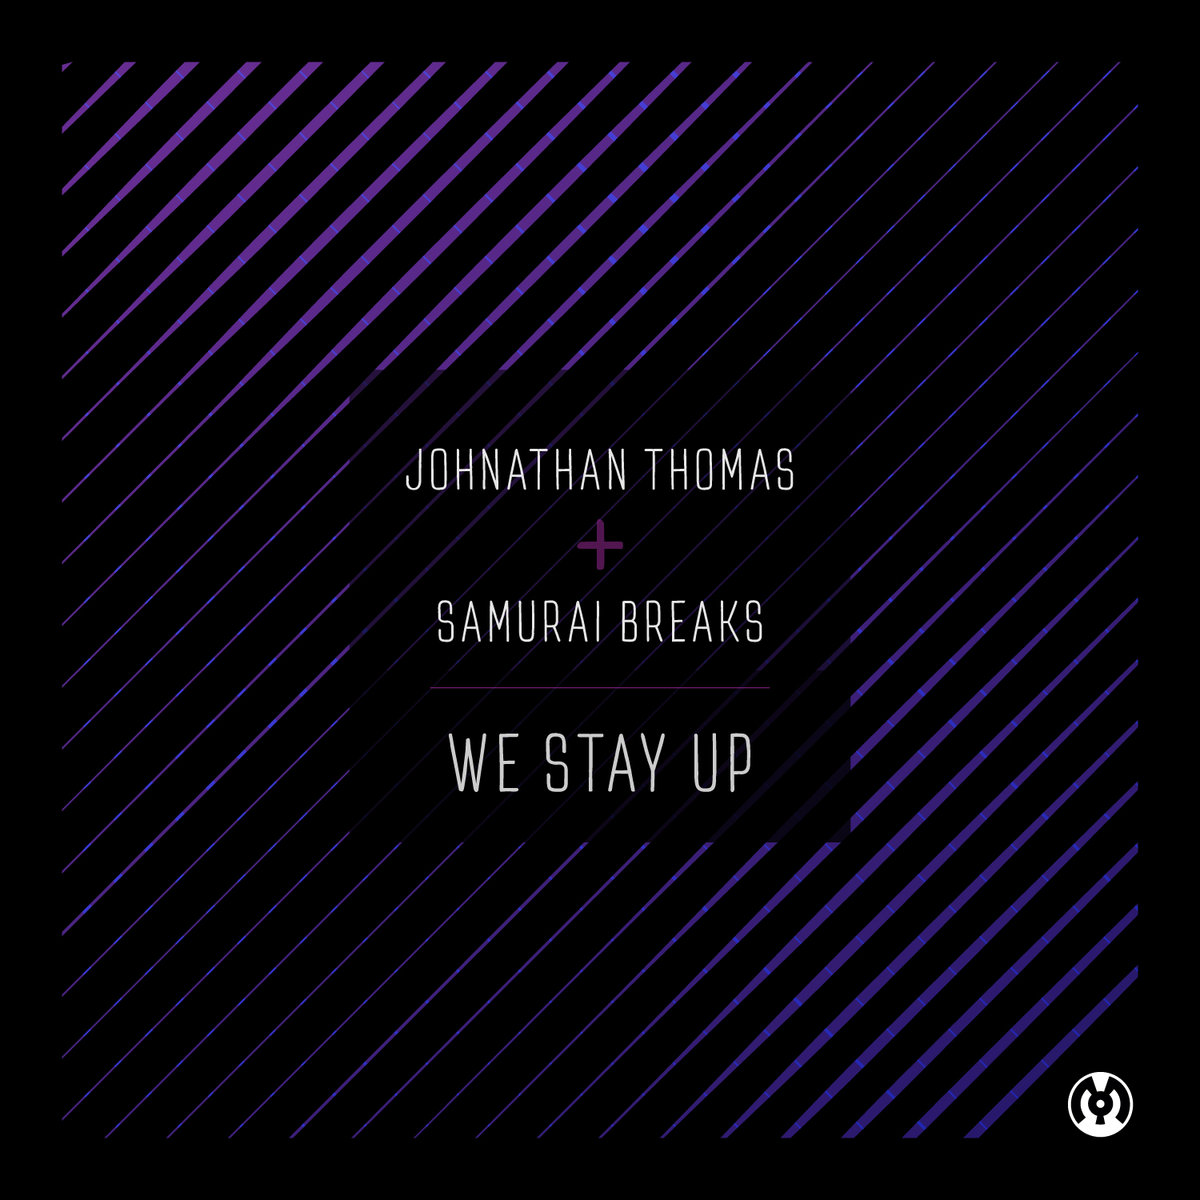 Johnathan Thomas & Samurai Breaks - Let Me Hit That @ 'We Stay Up' album (electronic, dubstep)